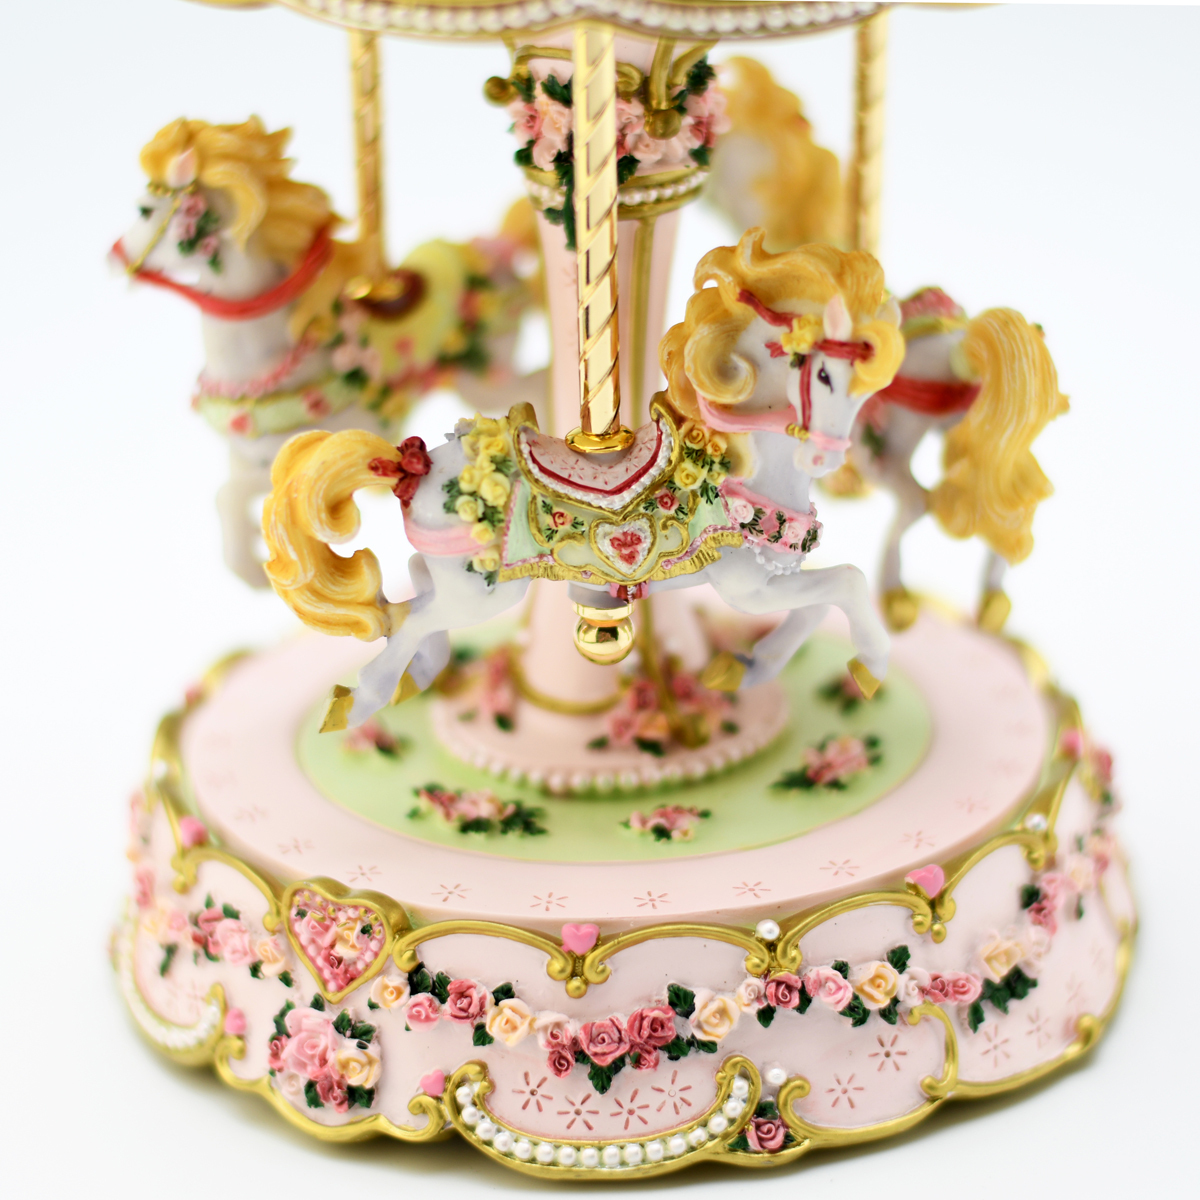 Adorable 18 Note Hearts and Roses 3 Horse Musical Carousel